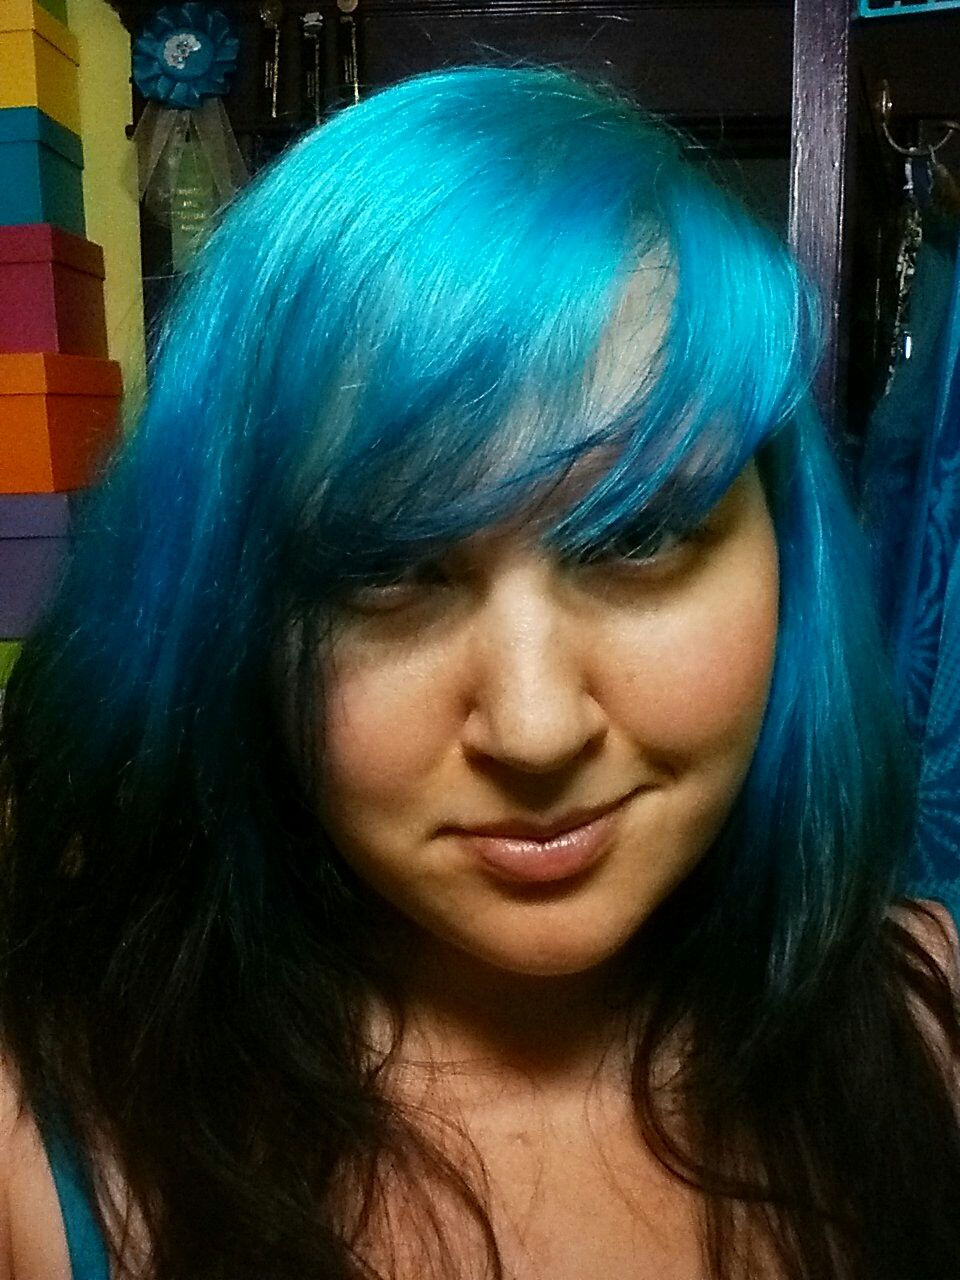 Ion Color Brilliance Neon Brights Line In Cyan Diluted And Mixed With A Little Aqua Demi Permanent Midnight Blue Black On Bleached Faded Turquoise Hair